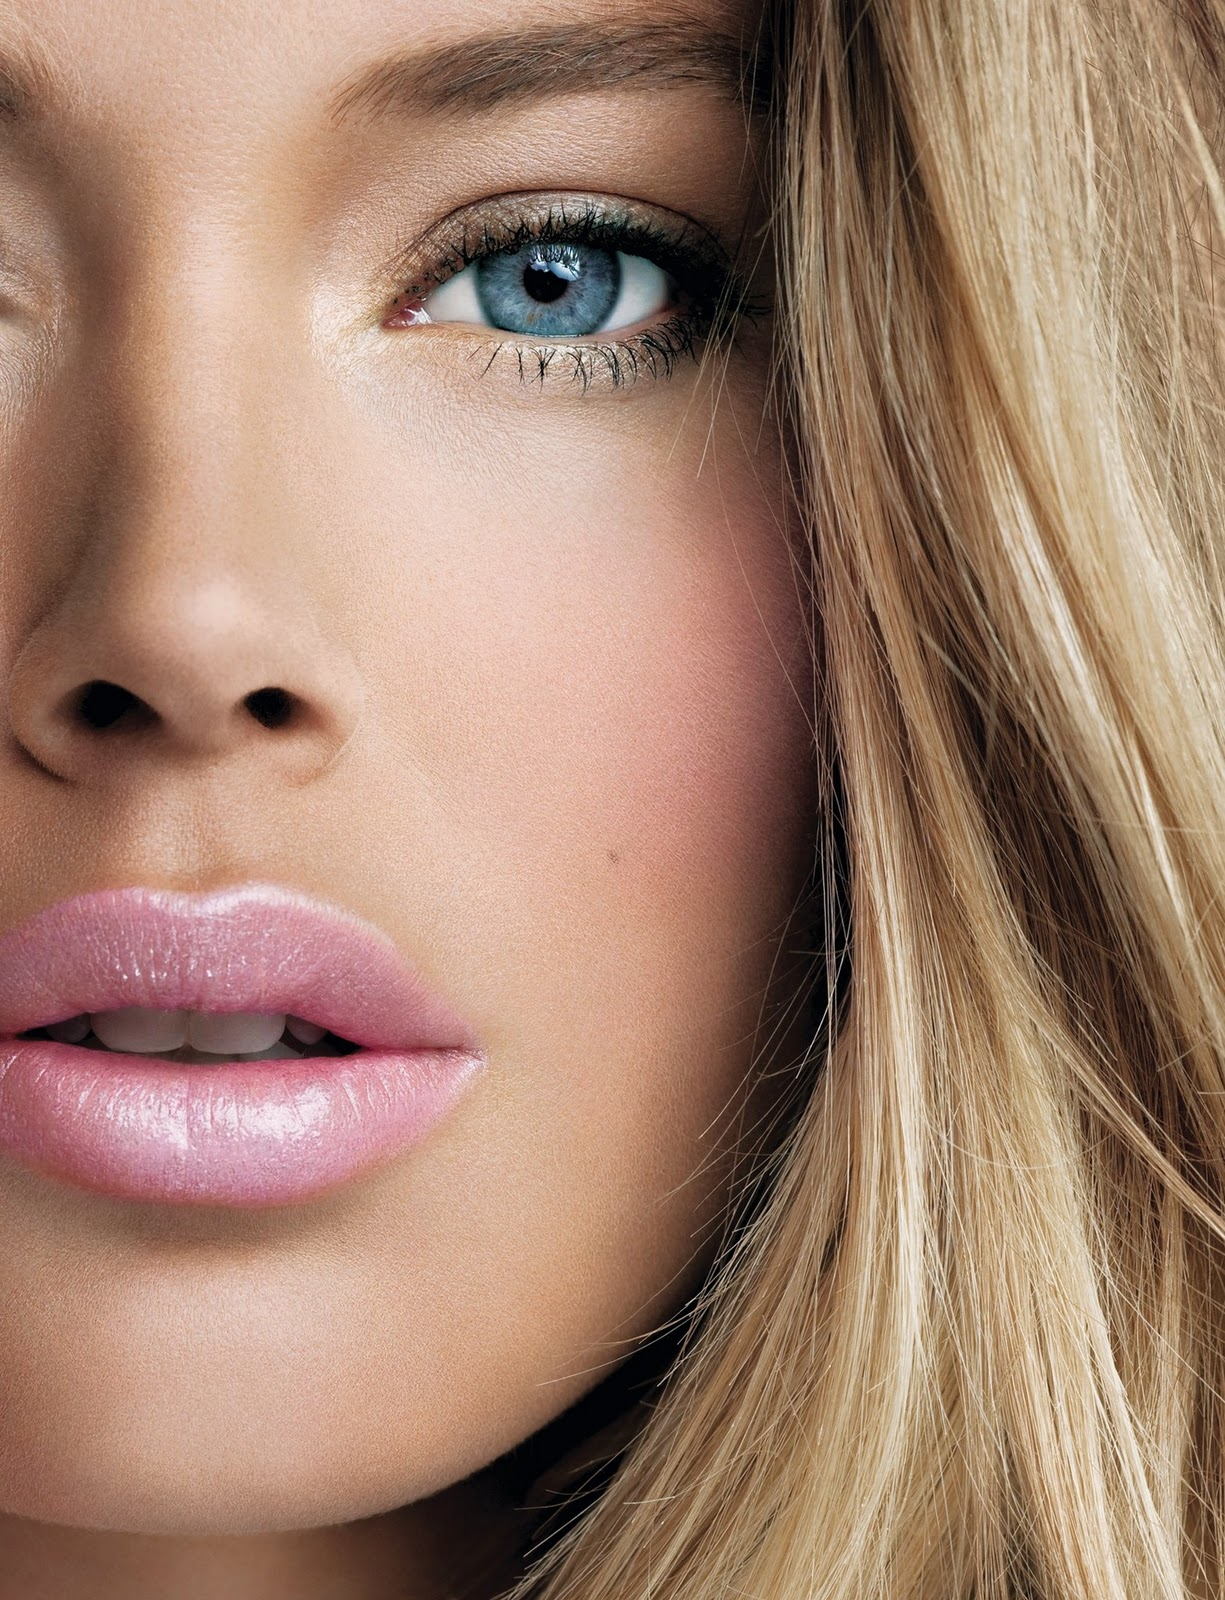 Doutzen Kroes L Oreal Ads 2011 Models Inspiration